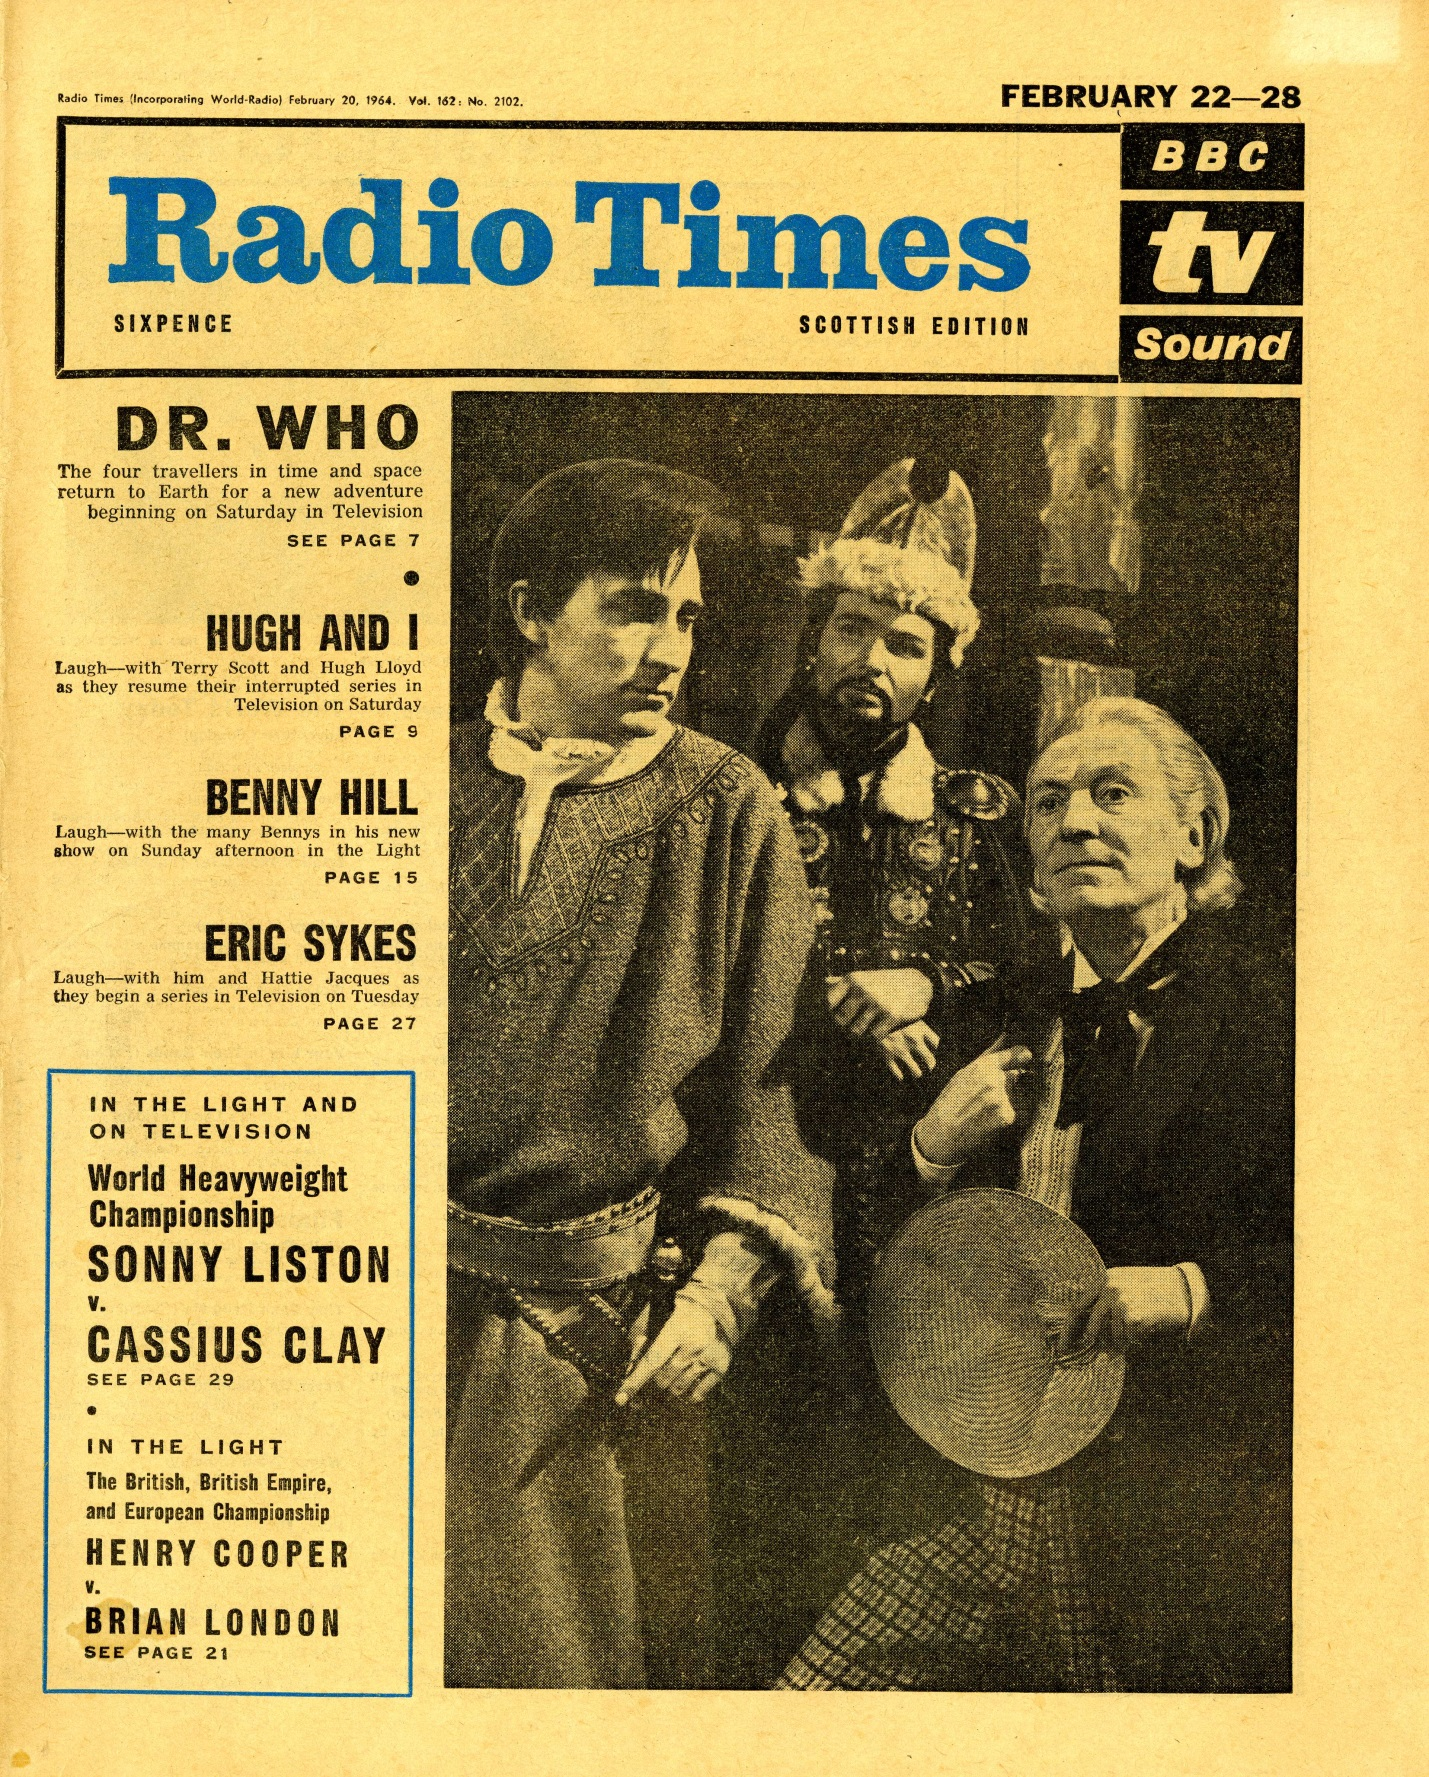 Radio Times. Marco Polo cover, 22-28 February 1964